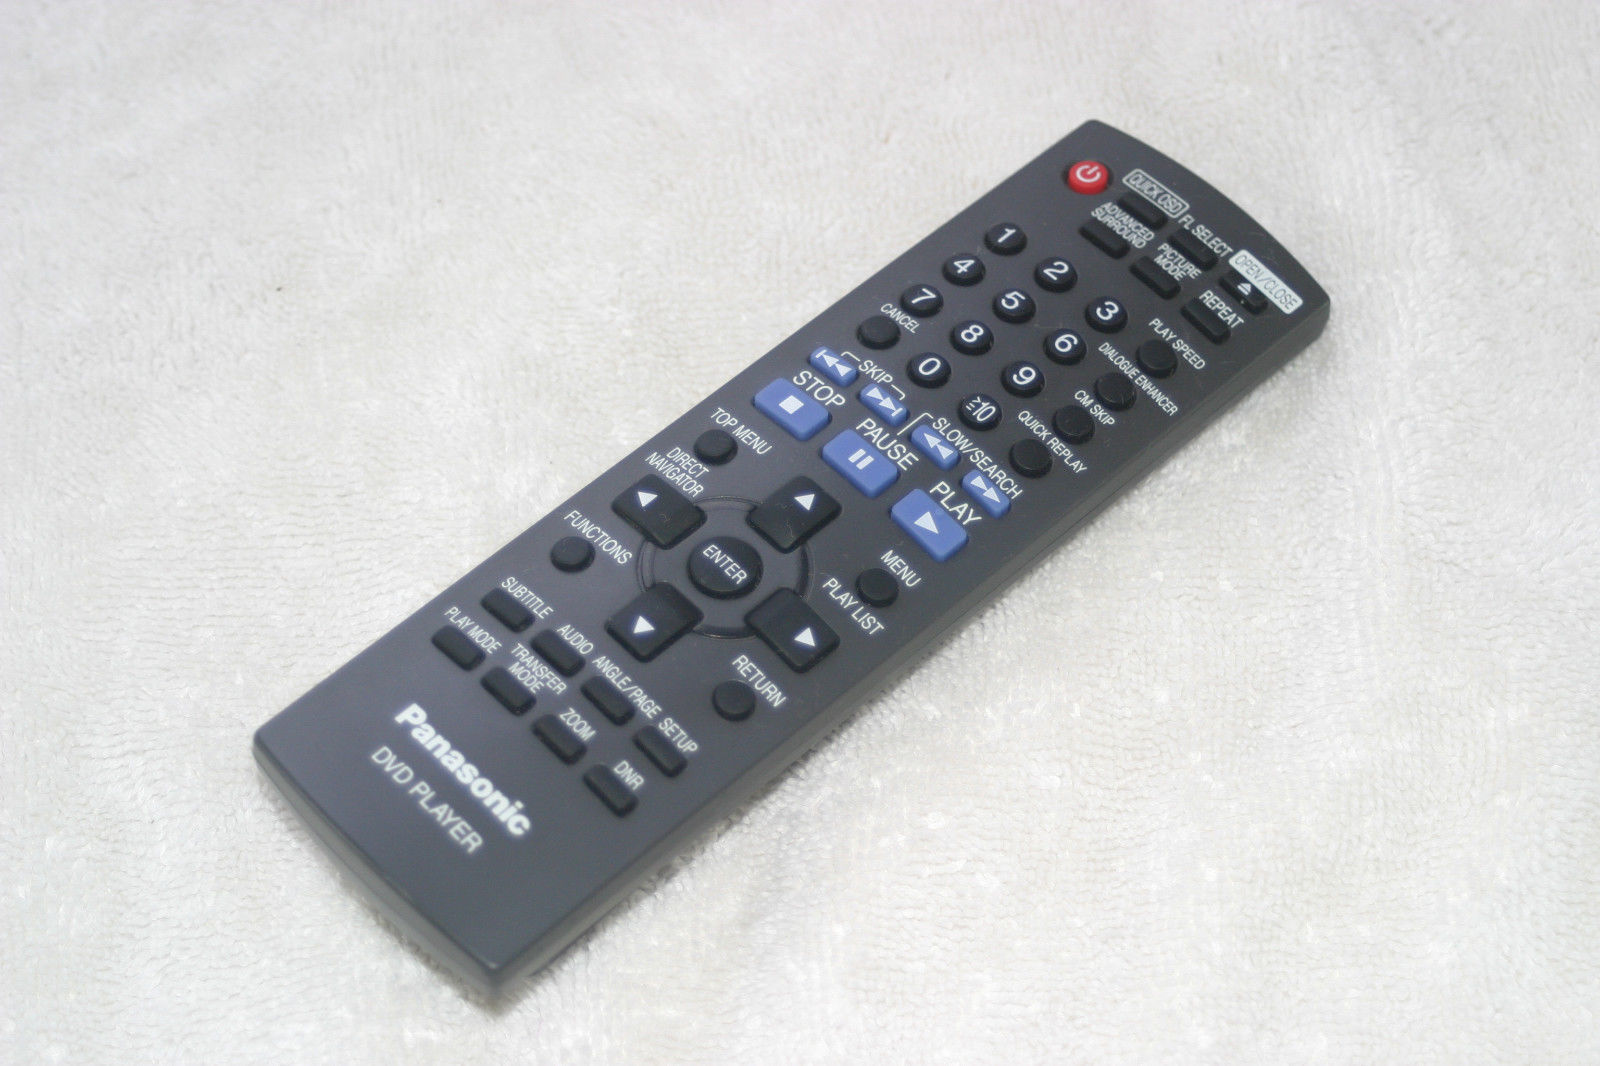 Original Panasonic EUR7631240 Remote Control for DVD-S53 DVDS53/K DVDS53P Tested